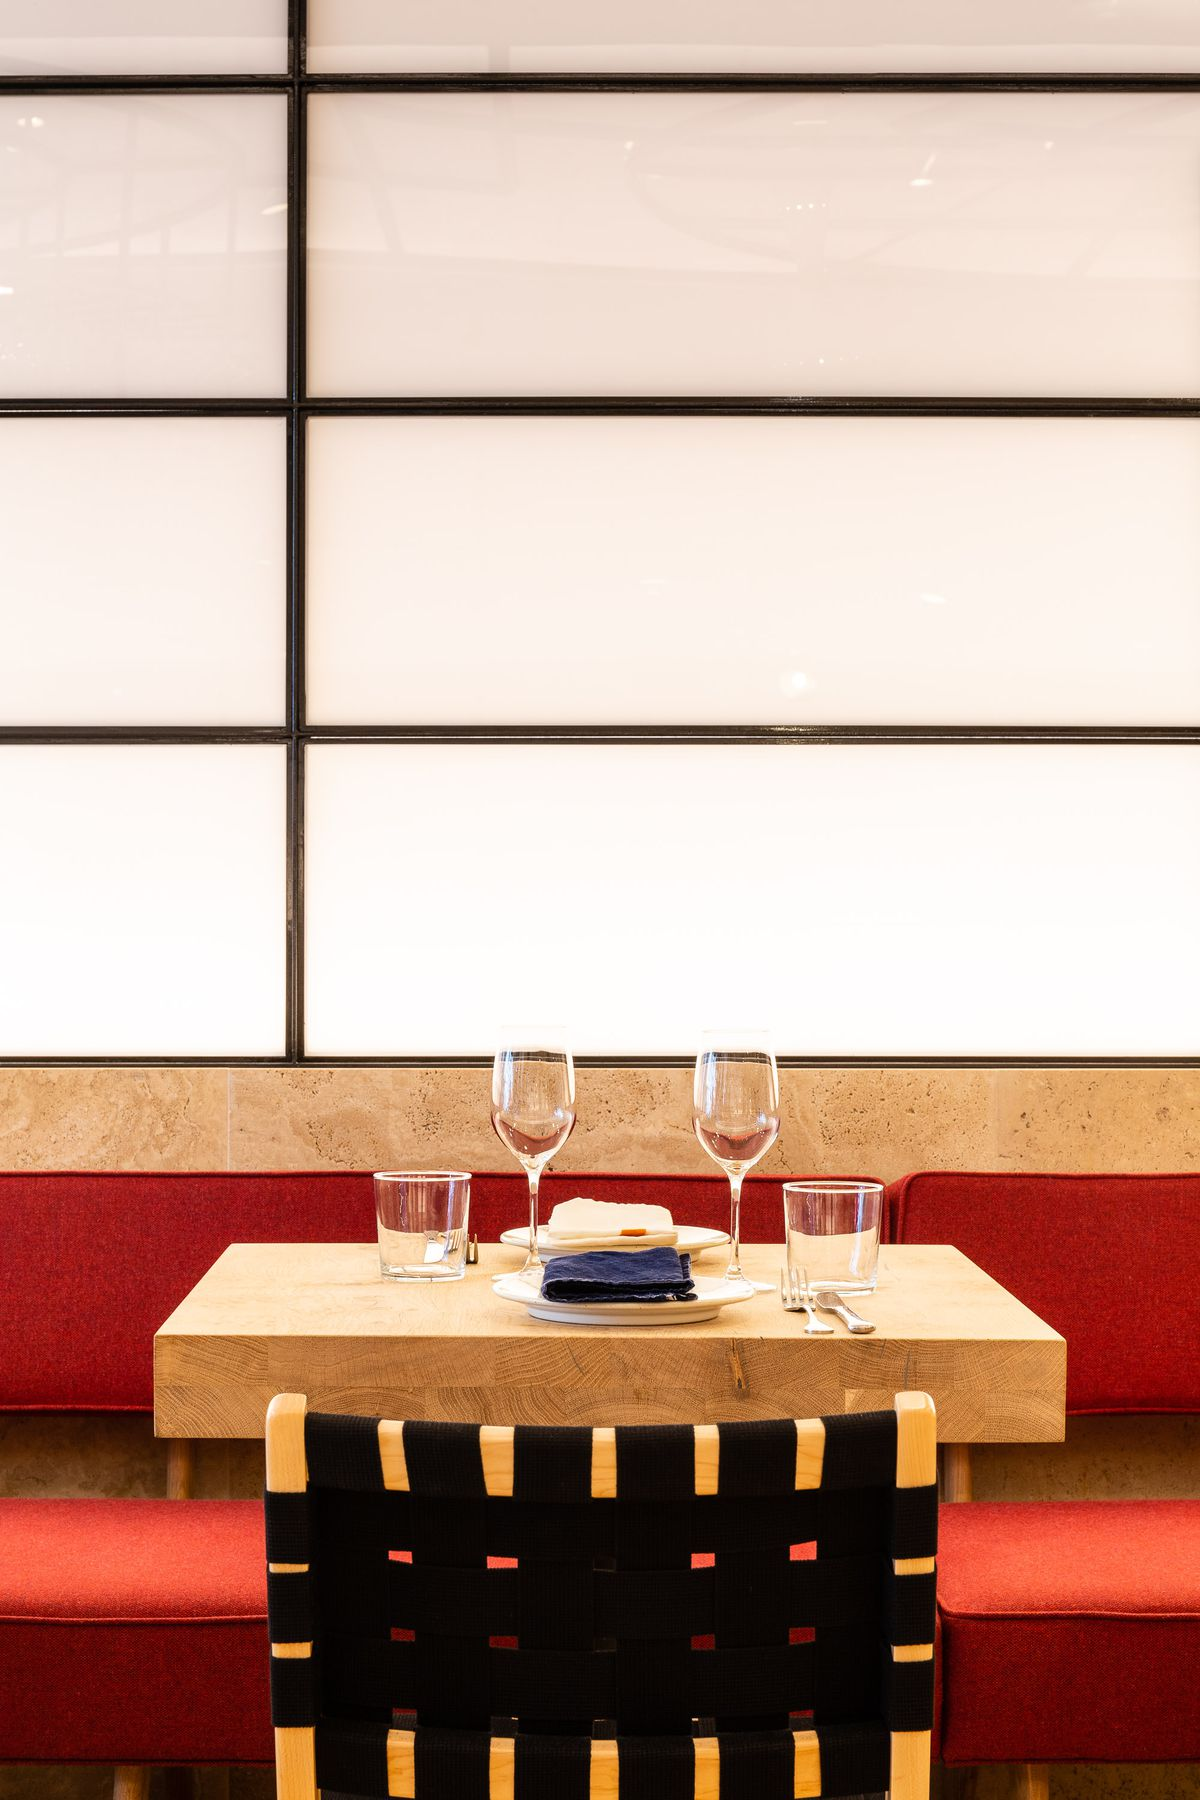 A table set with wineglasses and a red banquette at Yottam Ottolenghi's new London restaurant, Rovi